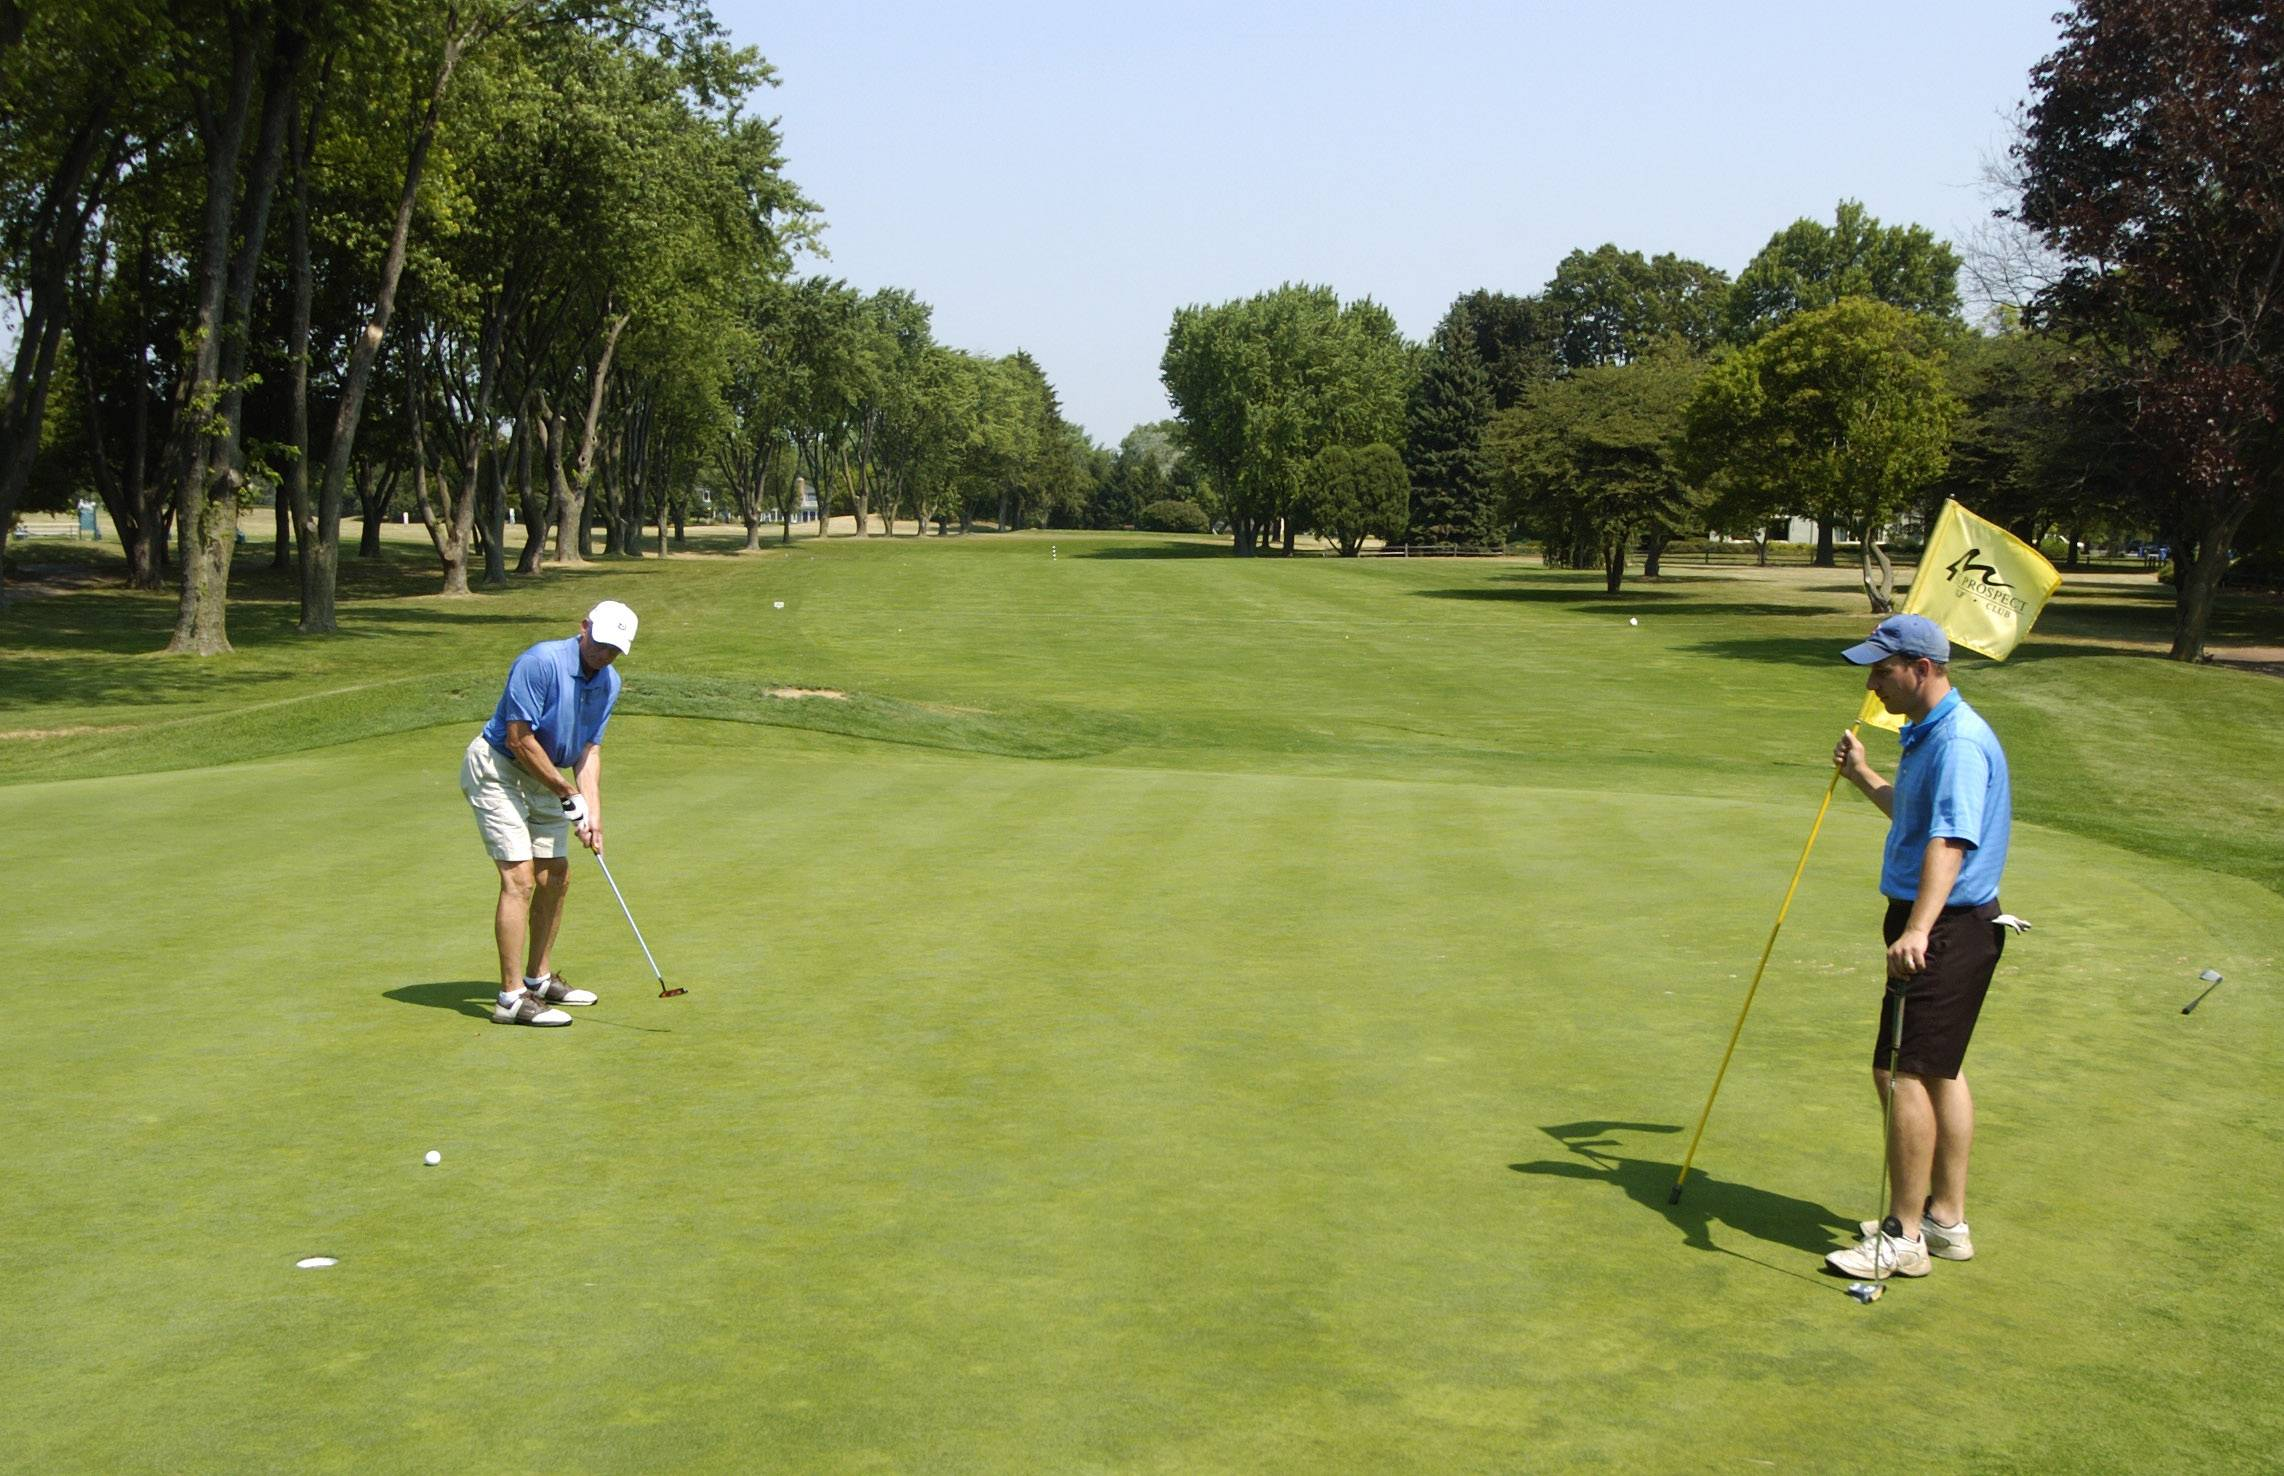 The Mount Prospect Park District has received bids for a new maintenance building at the Mount Prospect Golf Course.